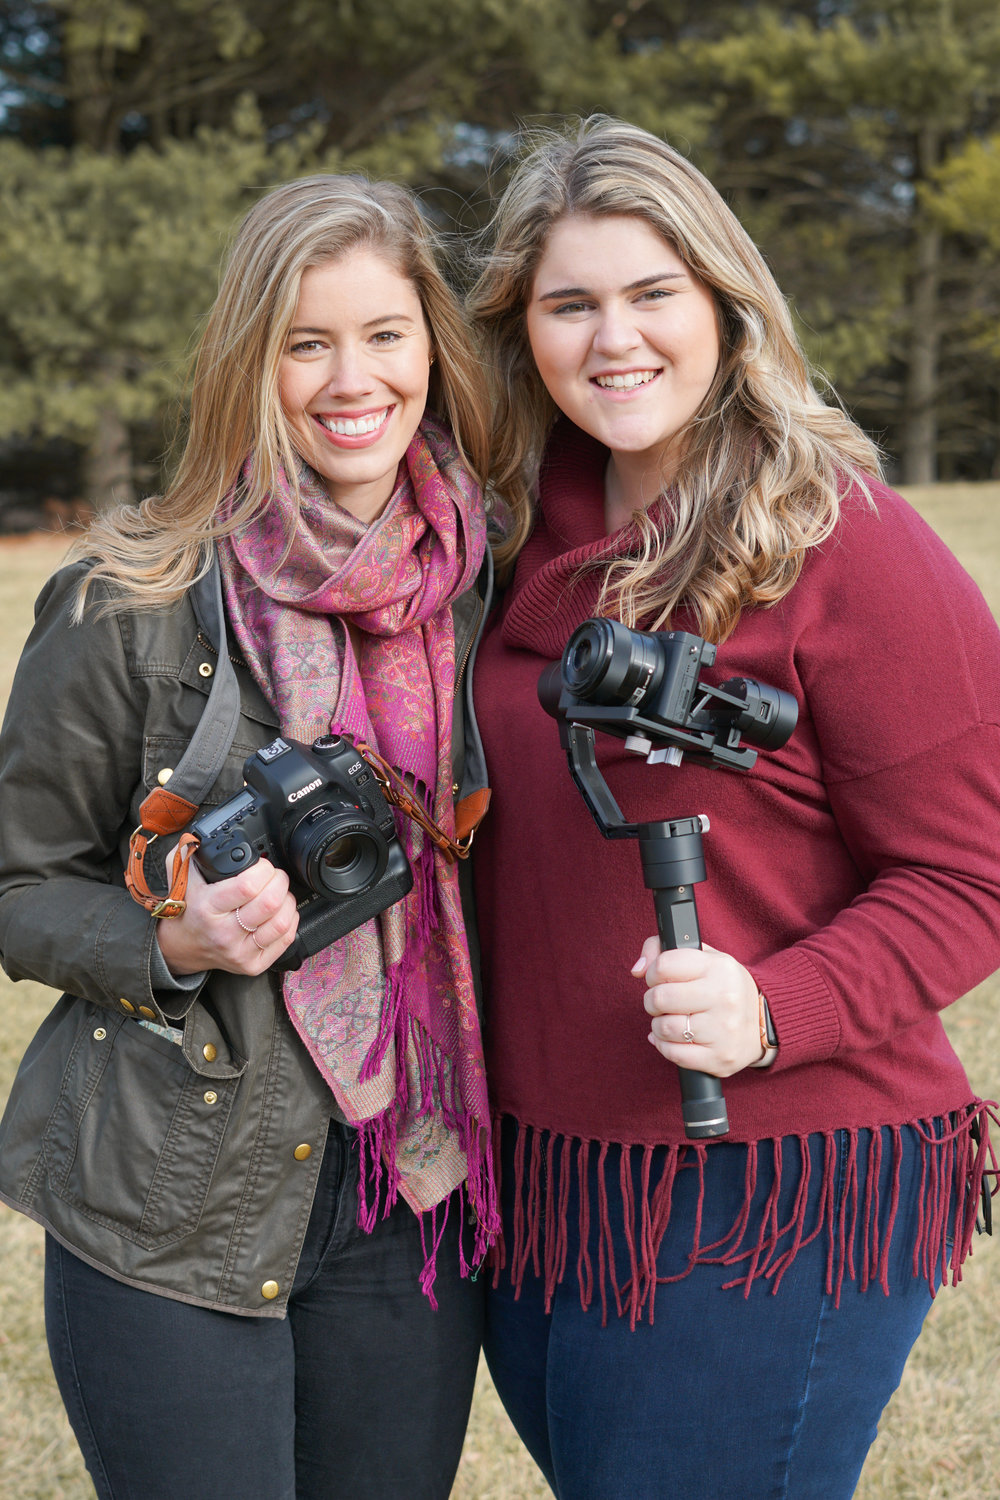 maryland-sisters-photography-videography-2.jpg